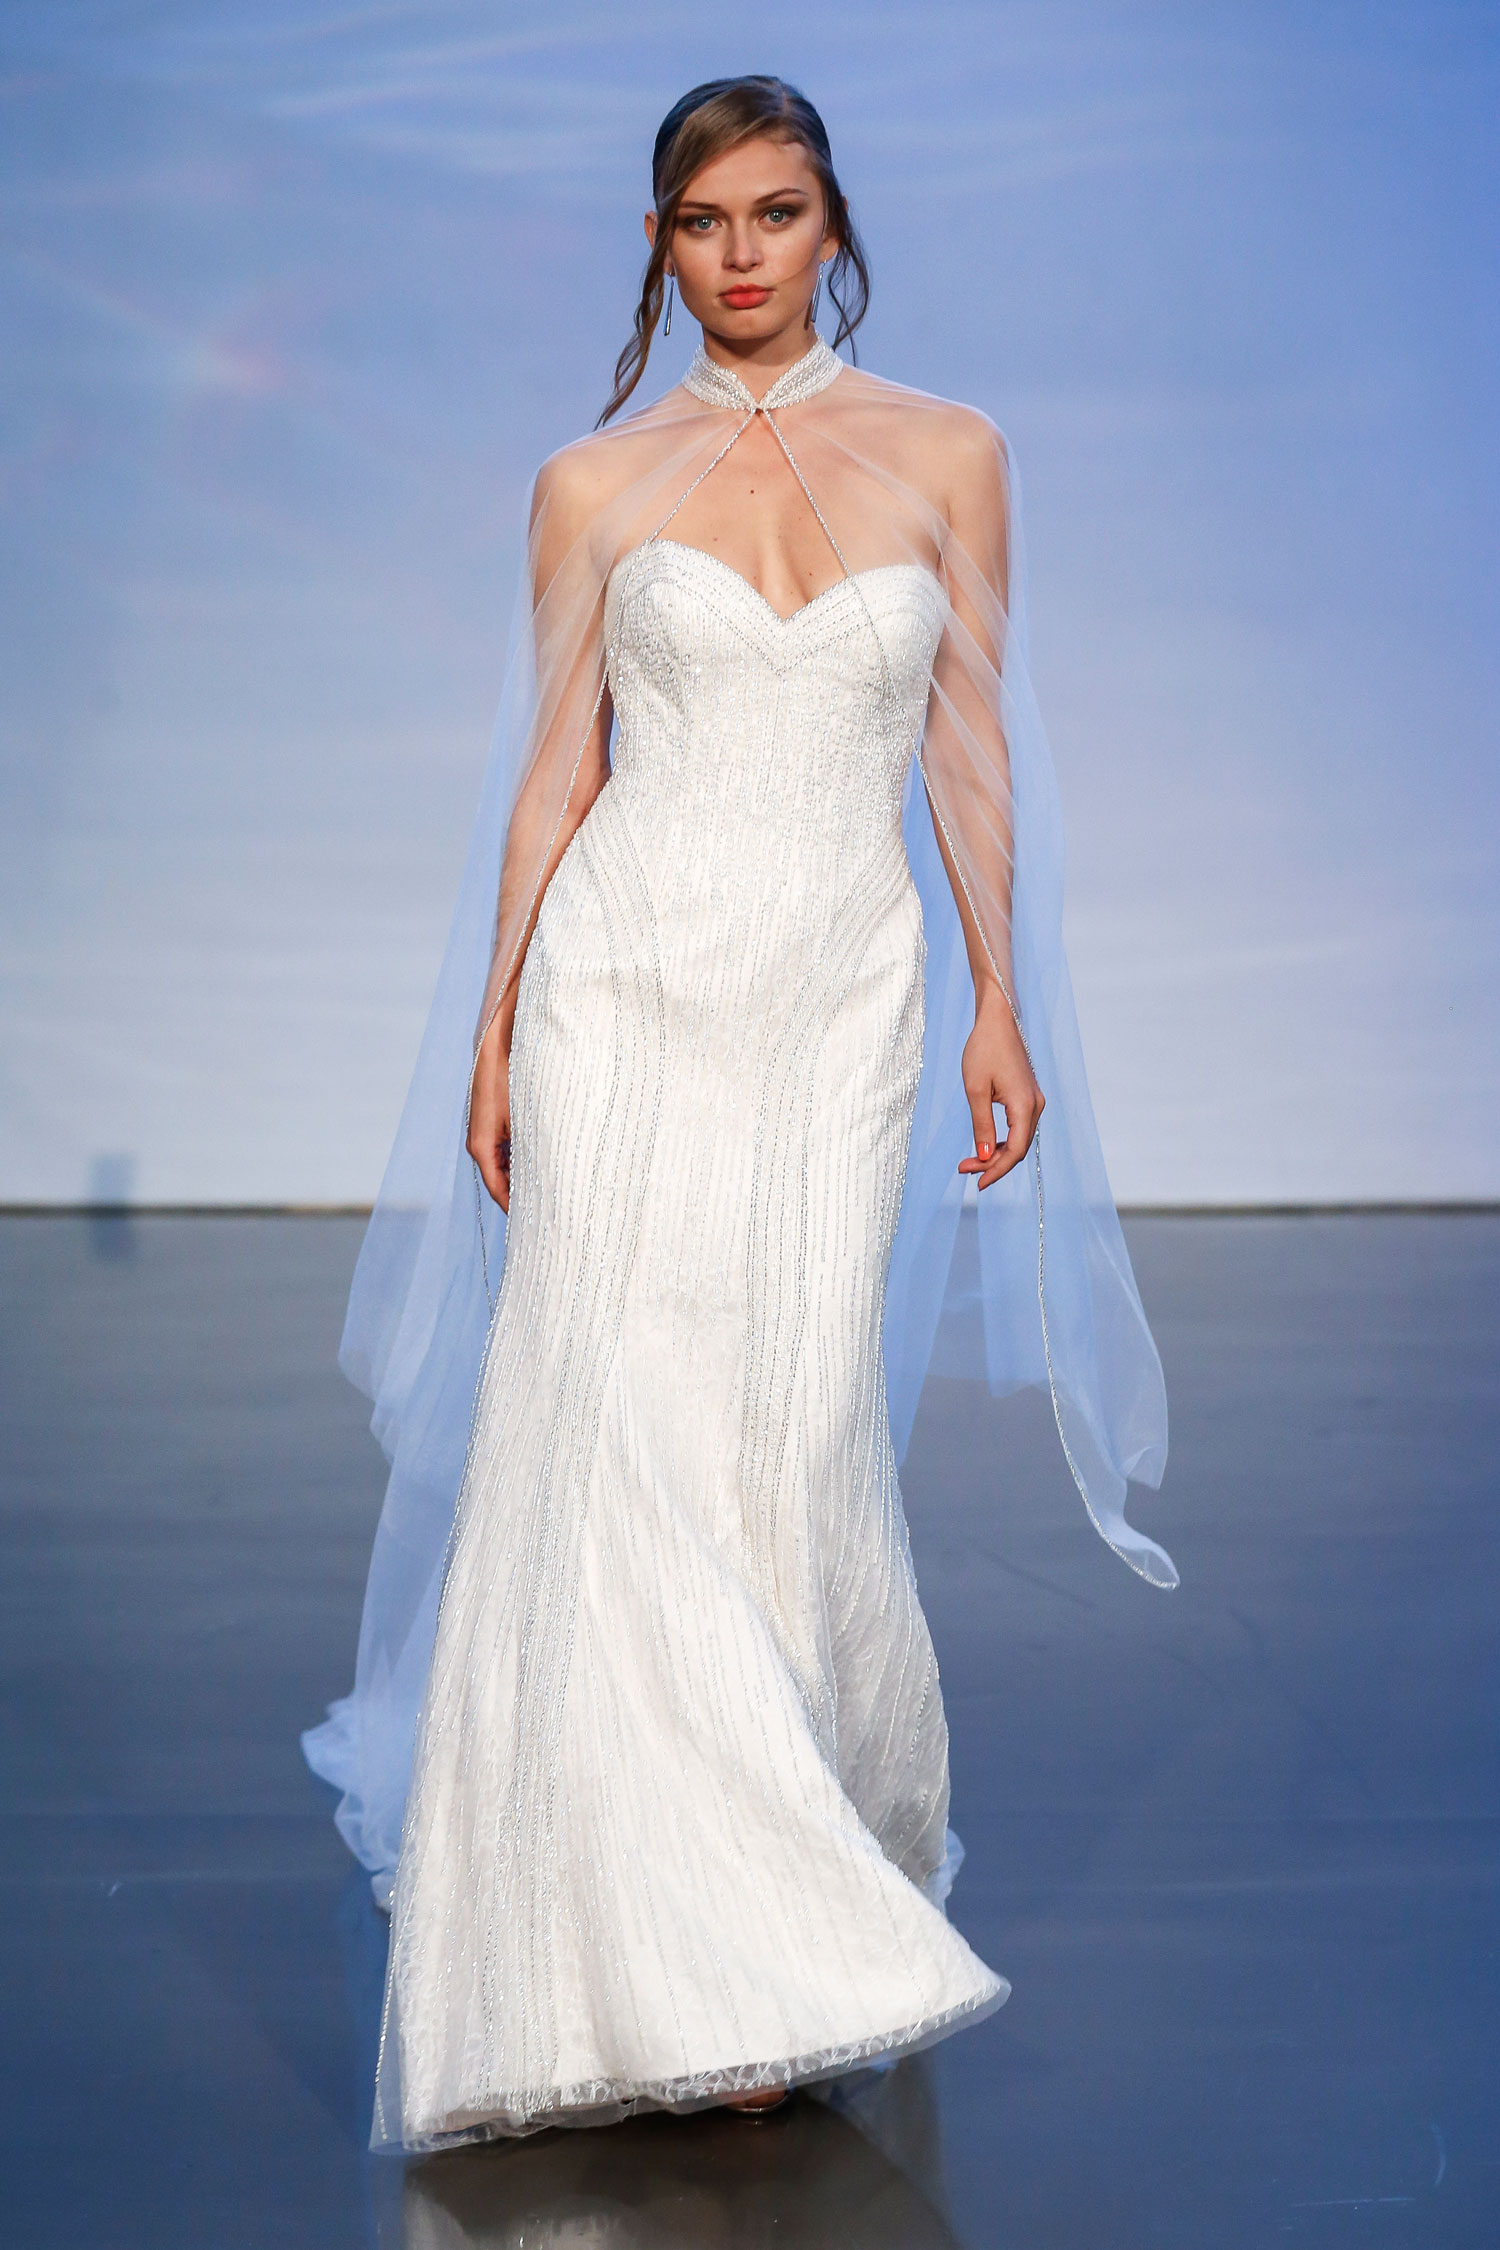 Halloween-inspired wedding dress with cape justin alexander fall 2019